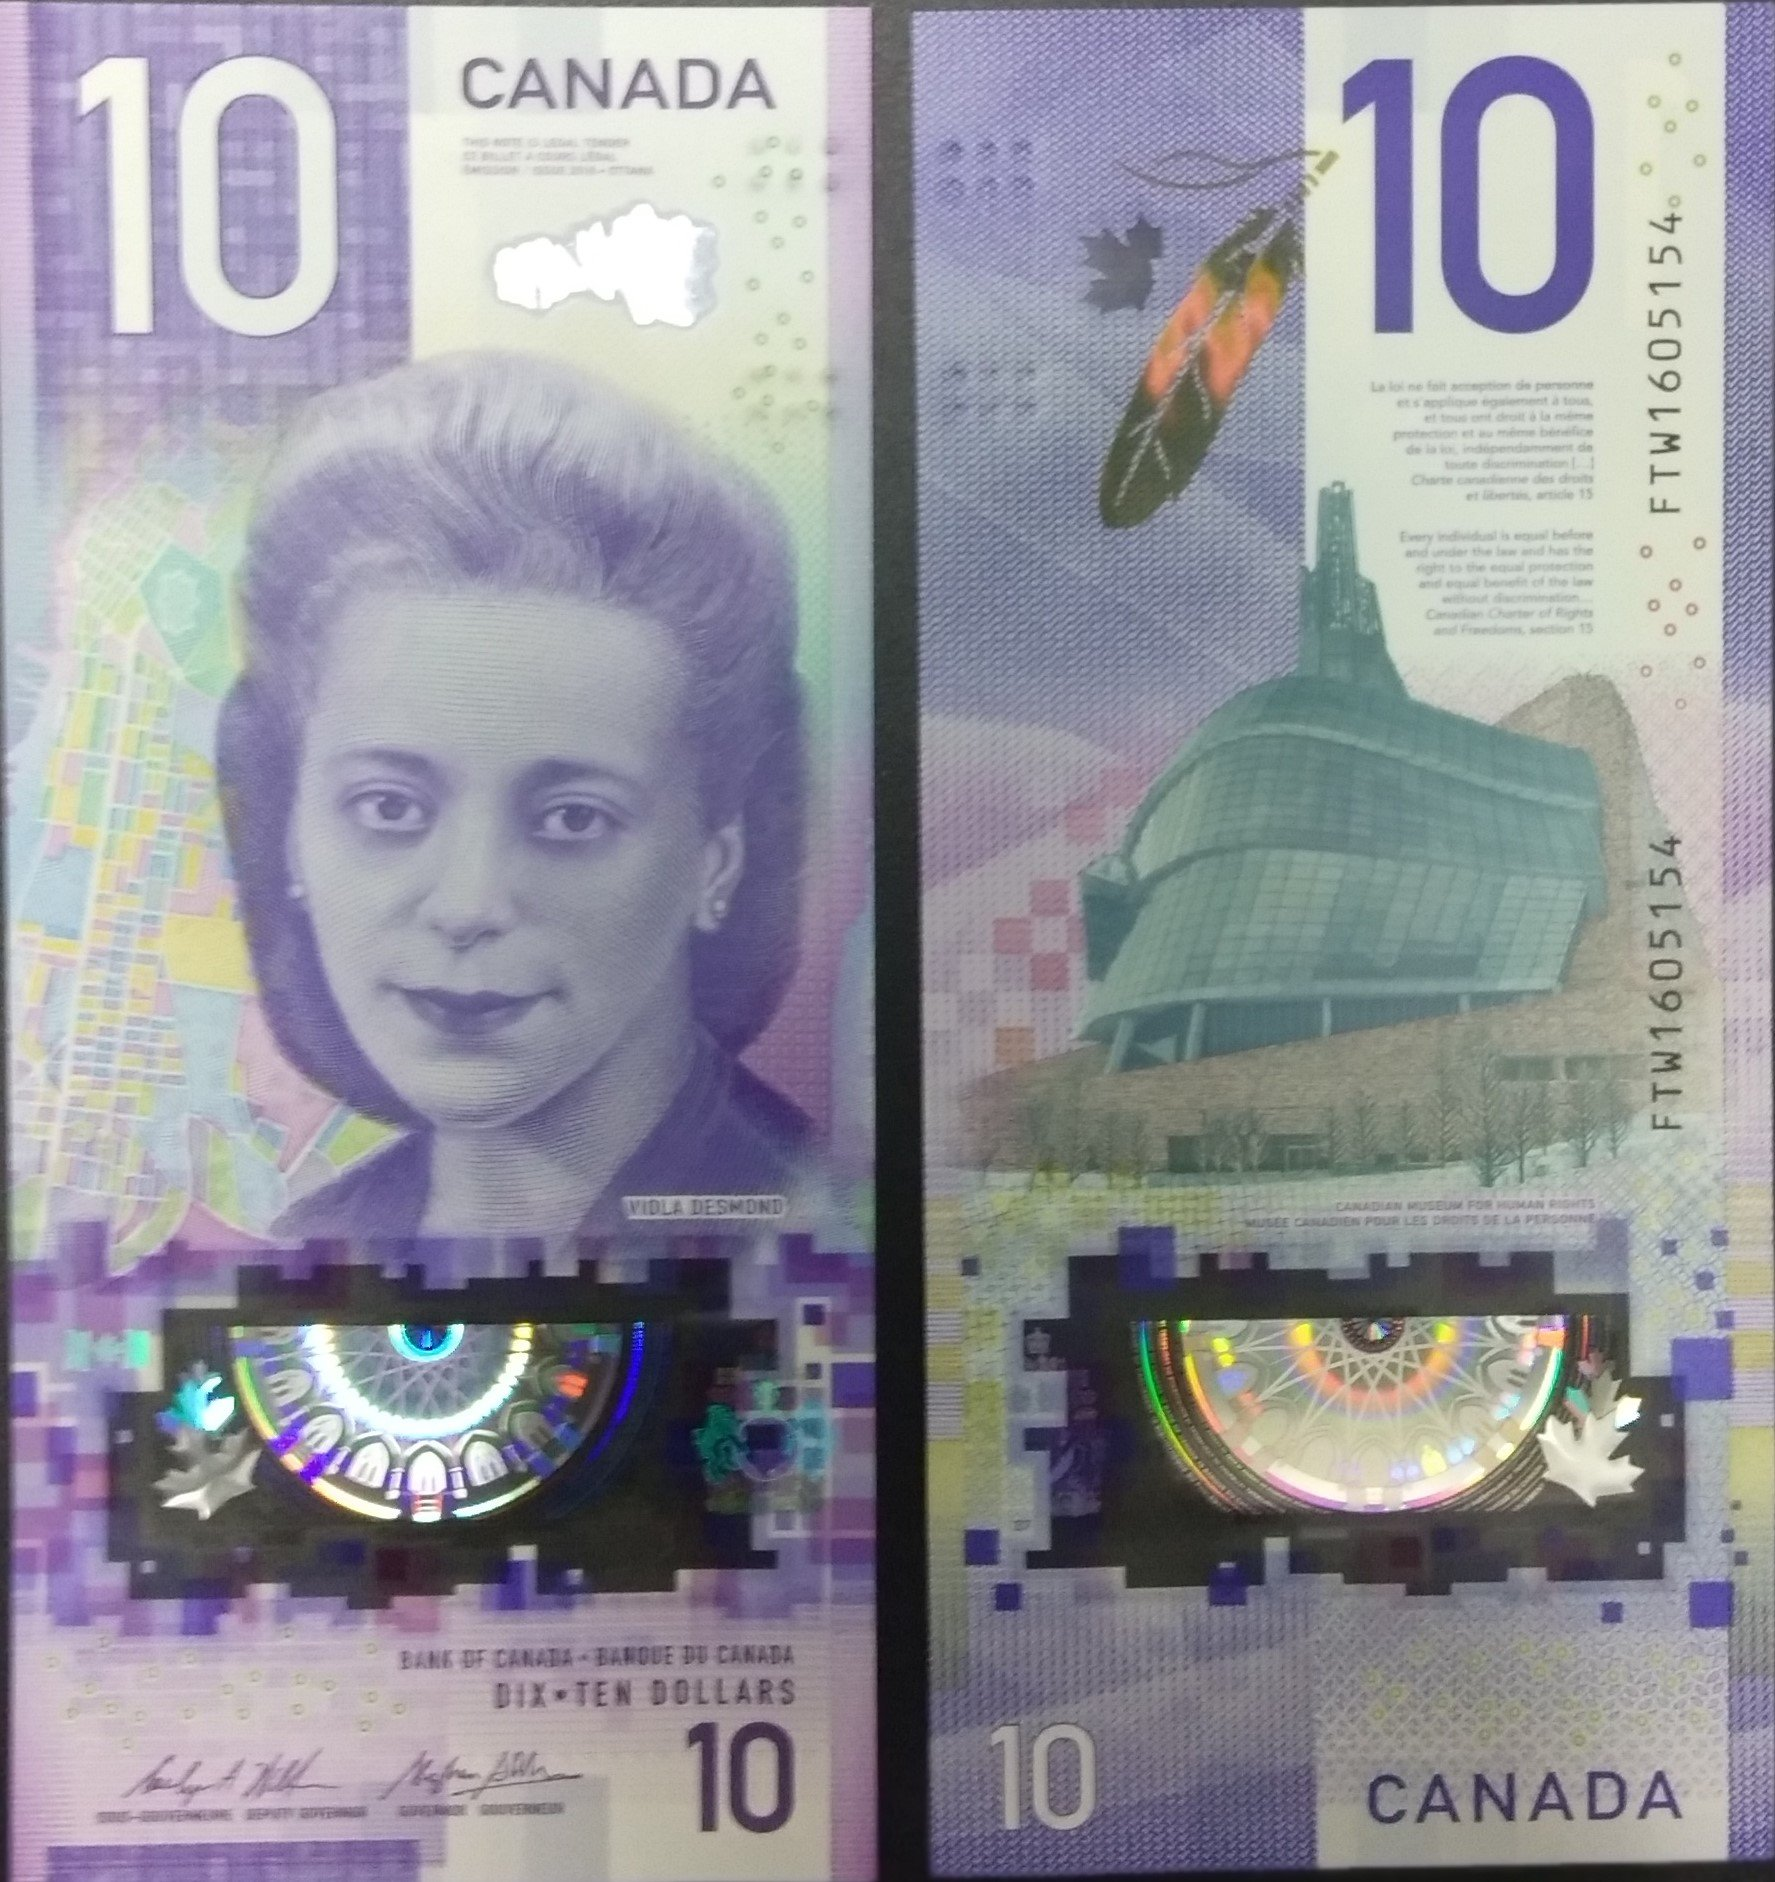 Canada 10 dollars polymer 2019 banknote for sale